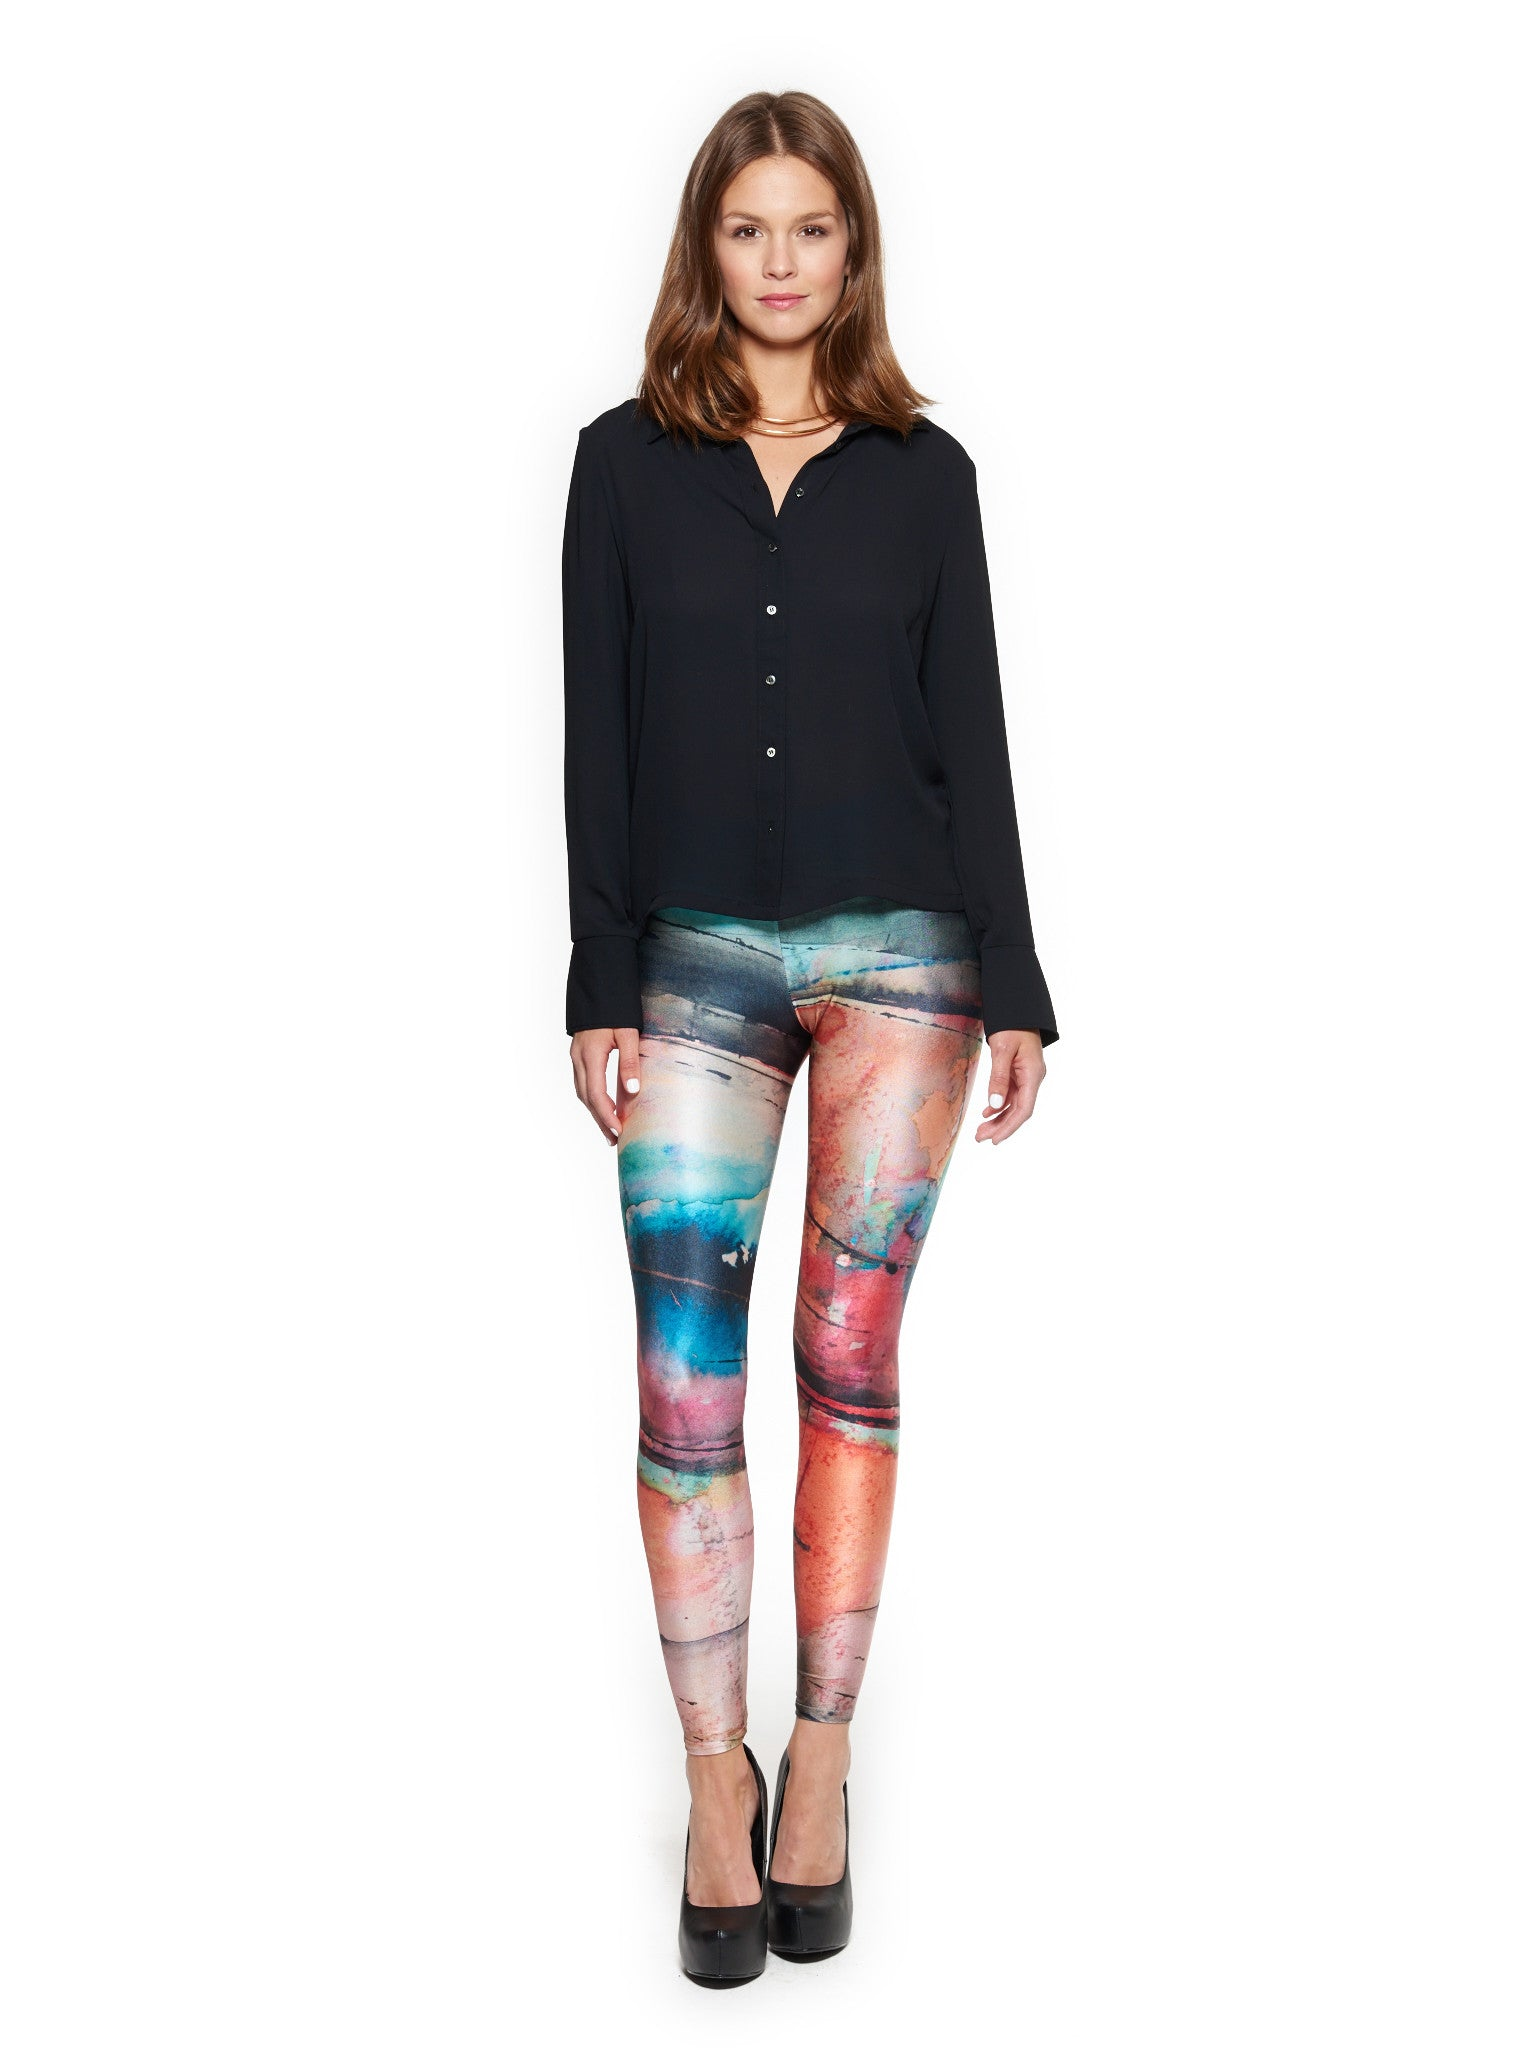 Facade Queen West Leggings - Nuvango Gallery & Goods - 1